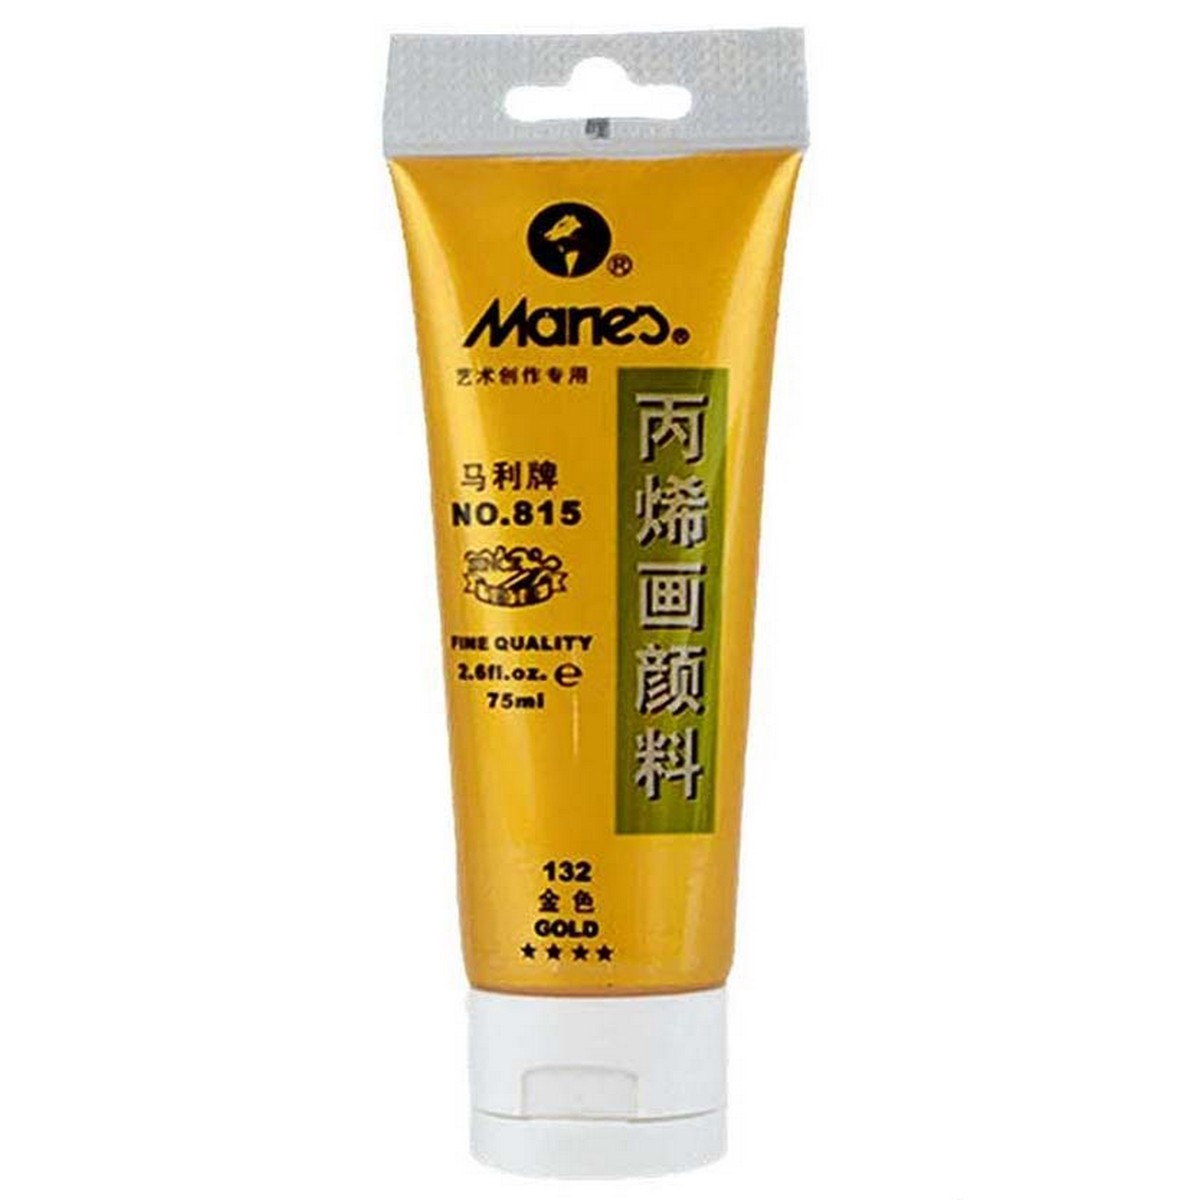 Maries 75ml Acrylic Colors Paint Tubes-132 Gold